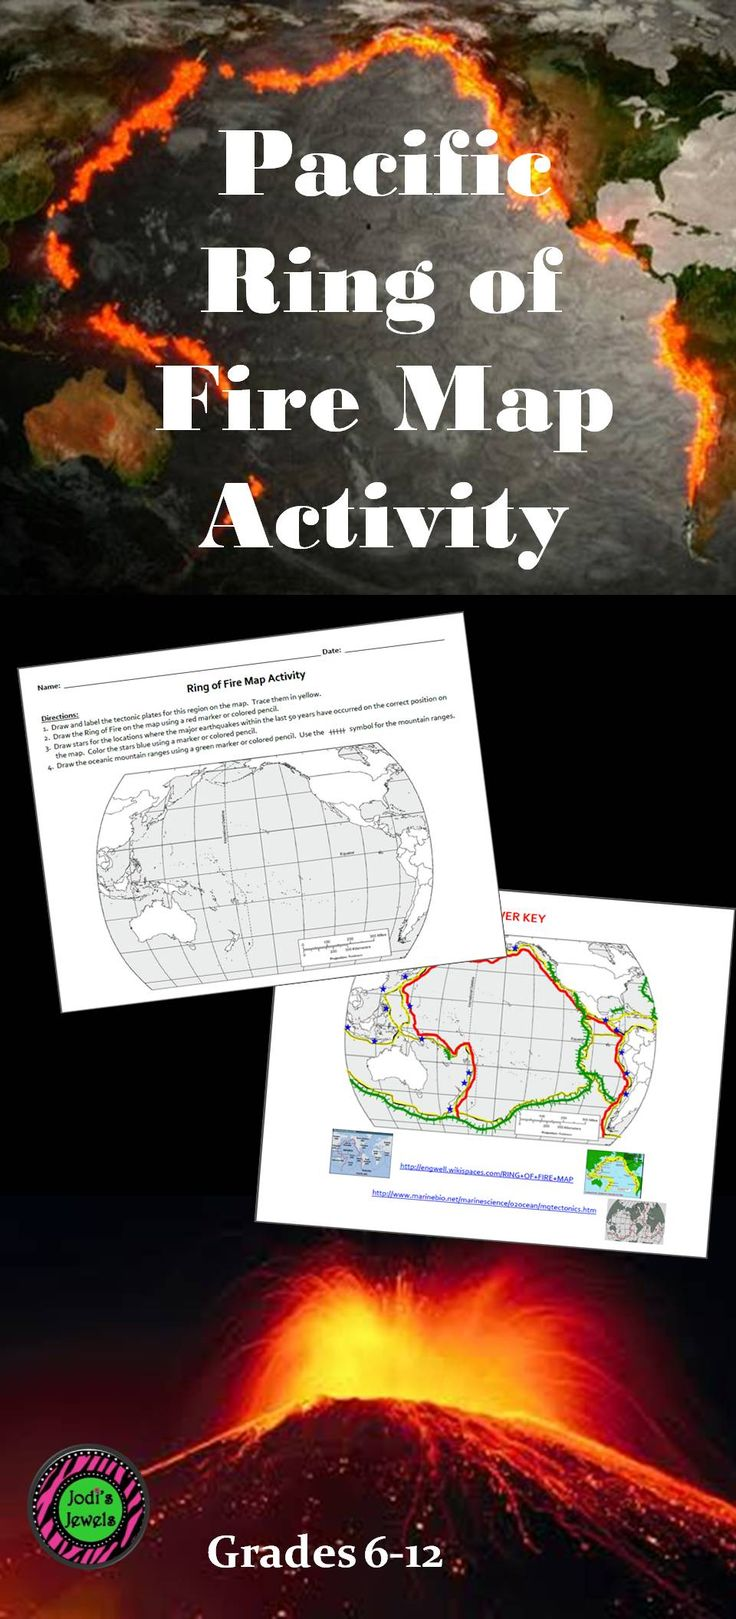 Students will complete a map that shows the tectonic plates, the Ring of Fire, major earthquake activity, and the oceanic mountain ranges for the Pacific Rim. Maps used to create this activity are at the websites on the ANSWER KEY page and can be supplied to students if necessary.